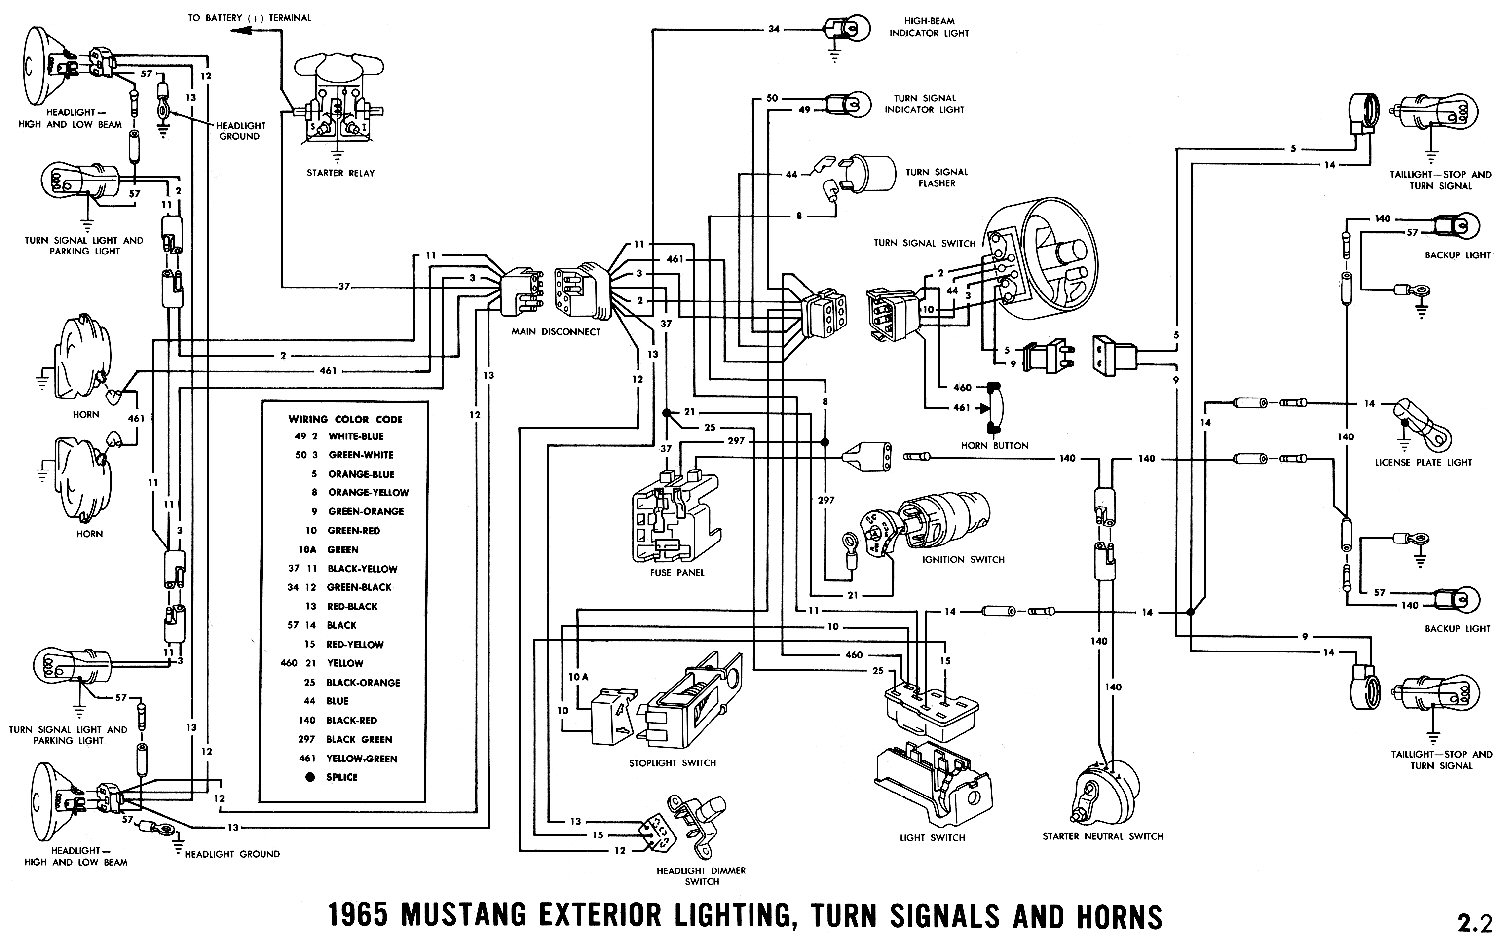 1965 wiring diagram mustang